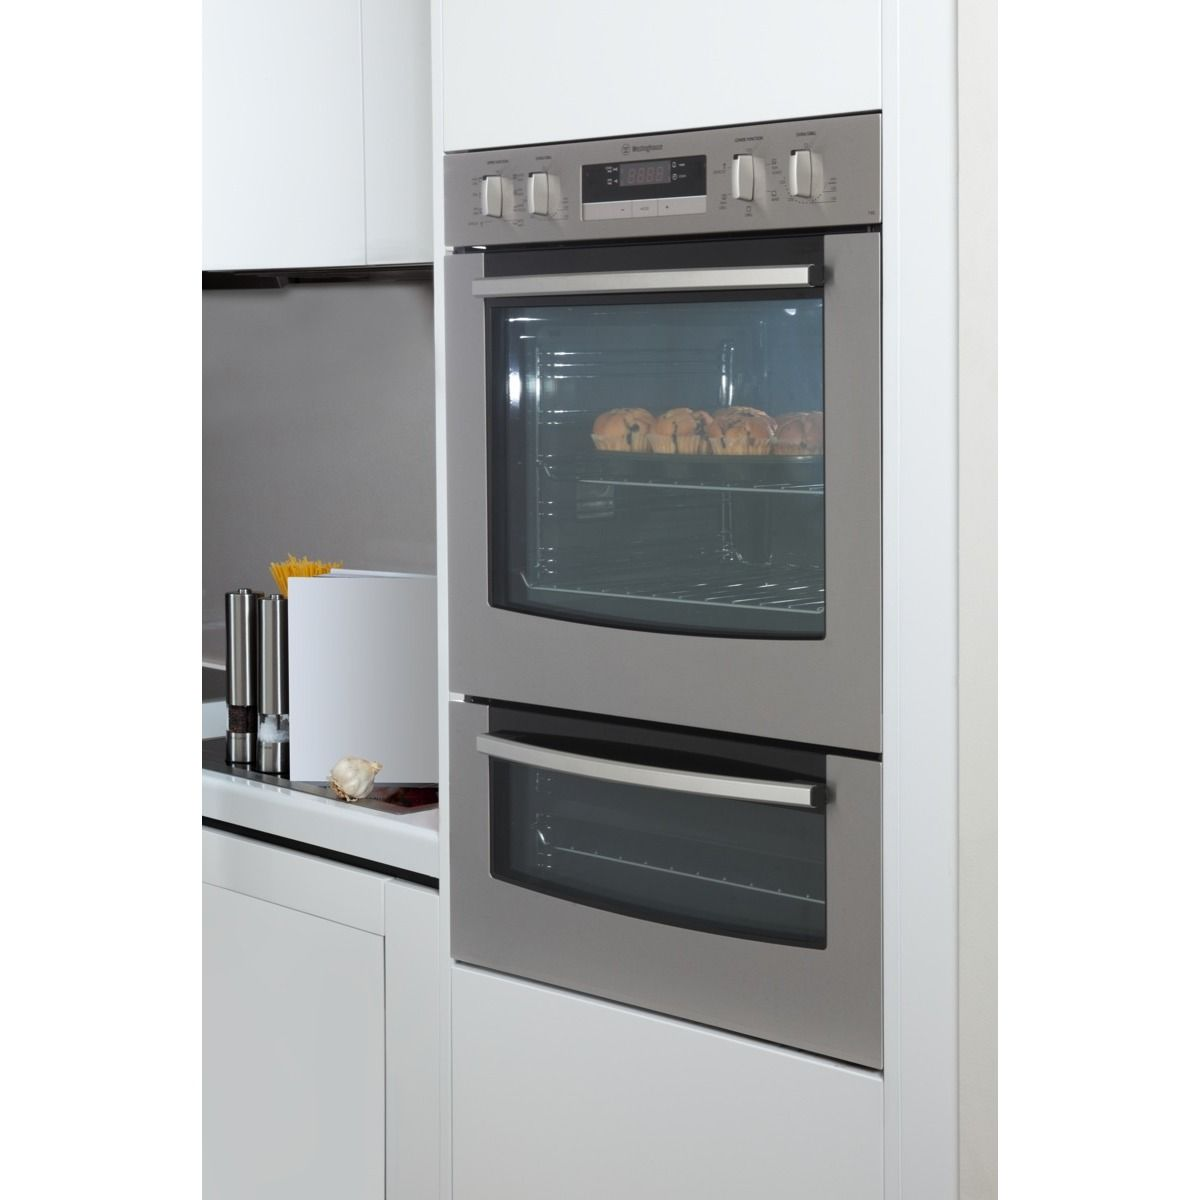 Check Out The Westinghouse 60cm Double Oven At The Good